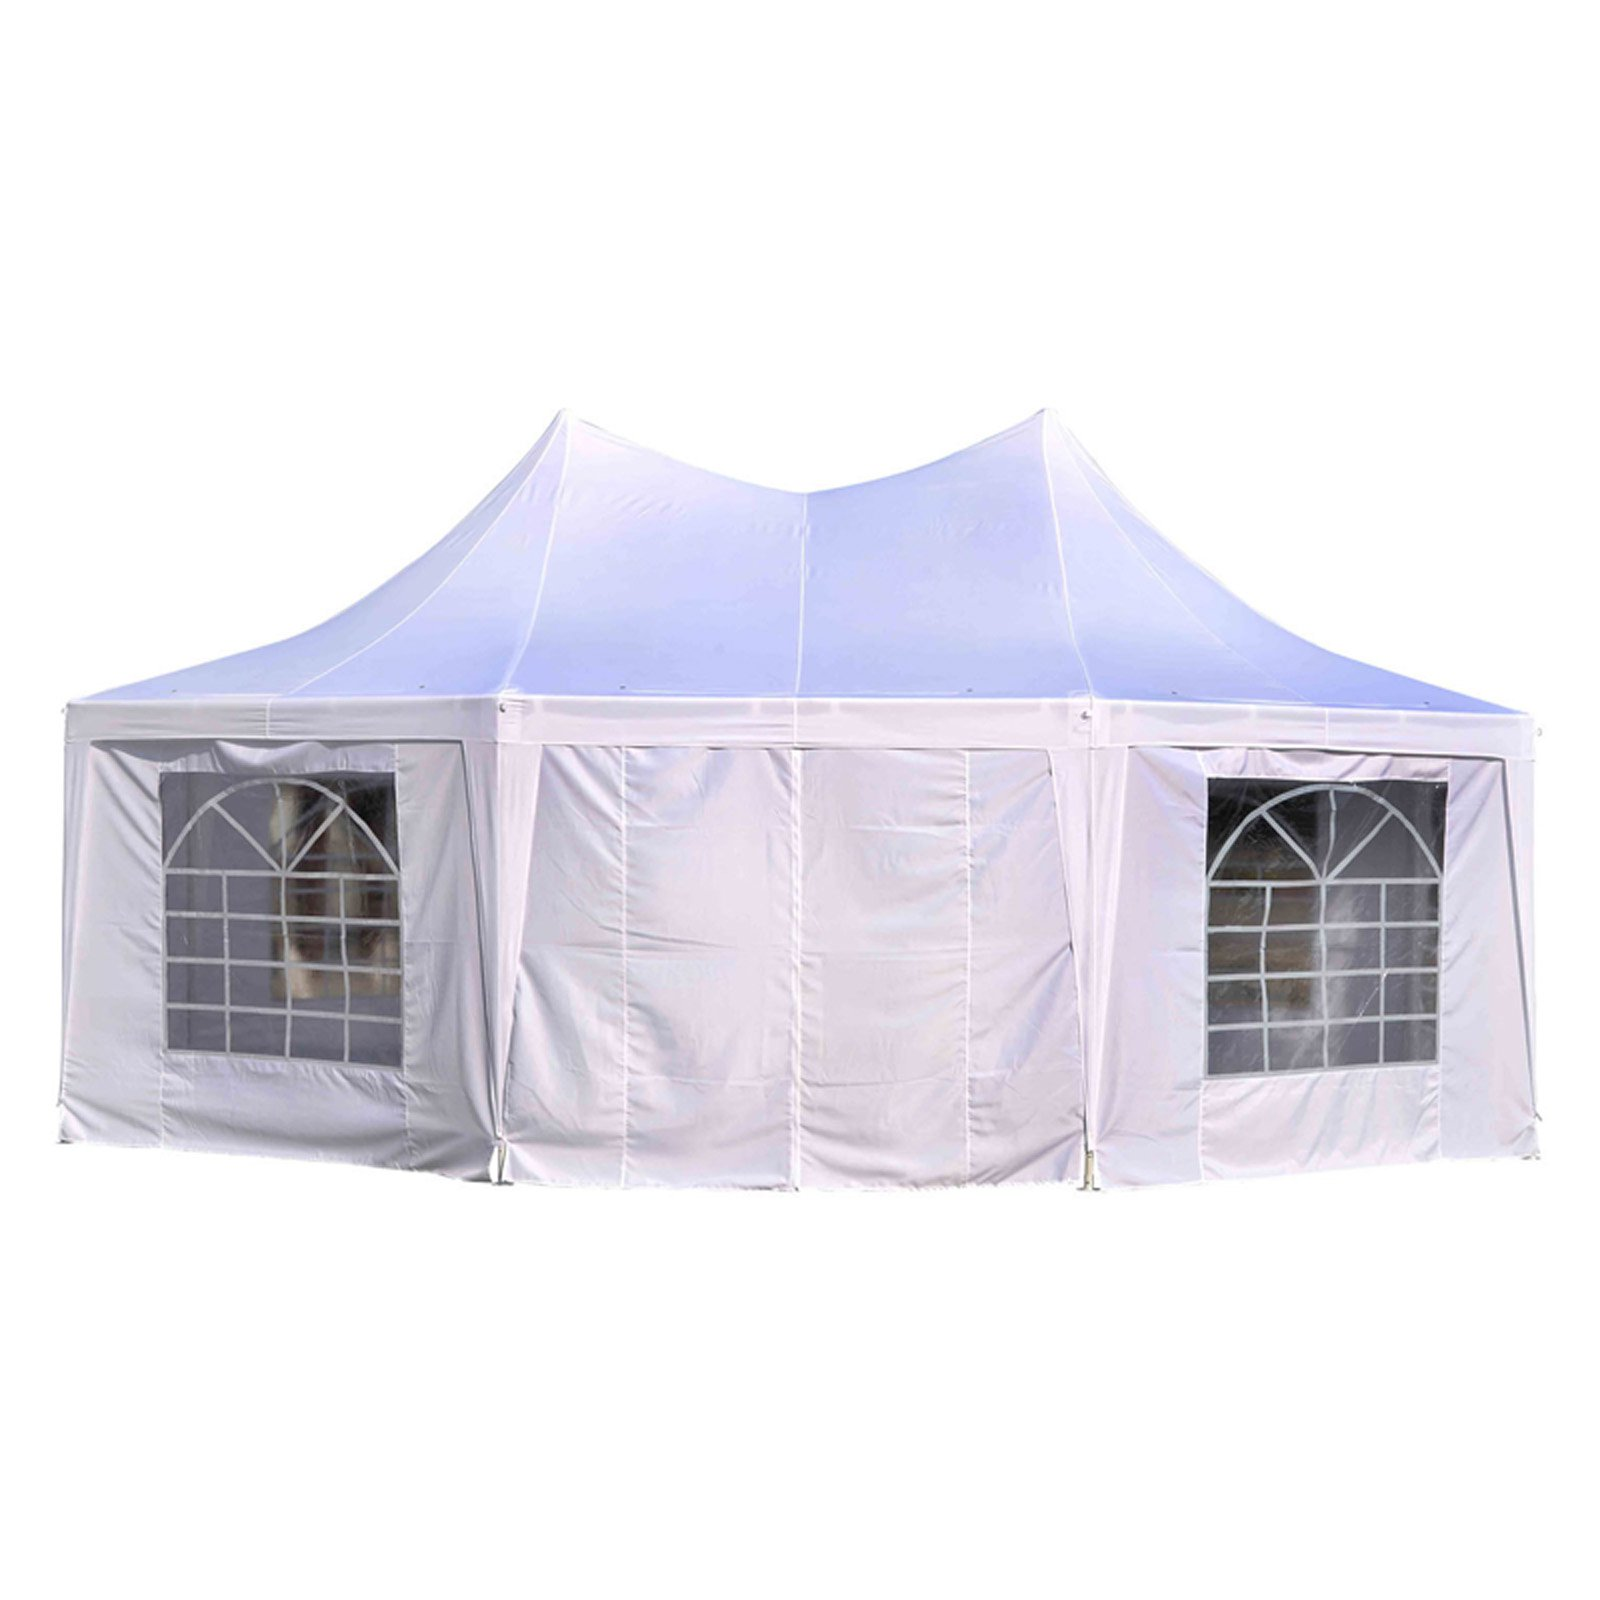 Outsunny 22 x 16 ft. Large Octagon Party Gazebo Canopy Tent